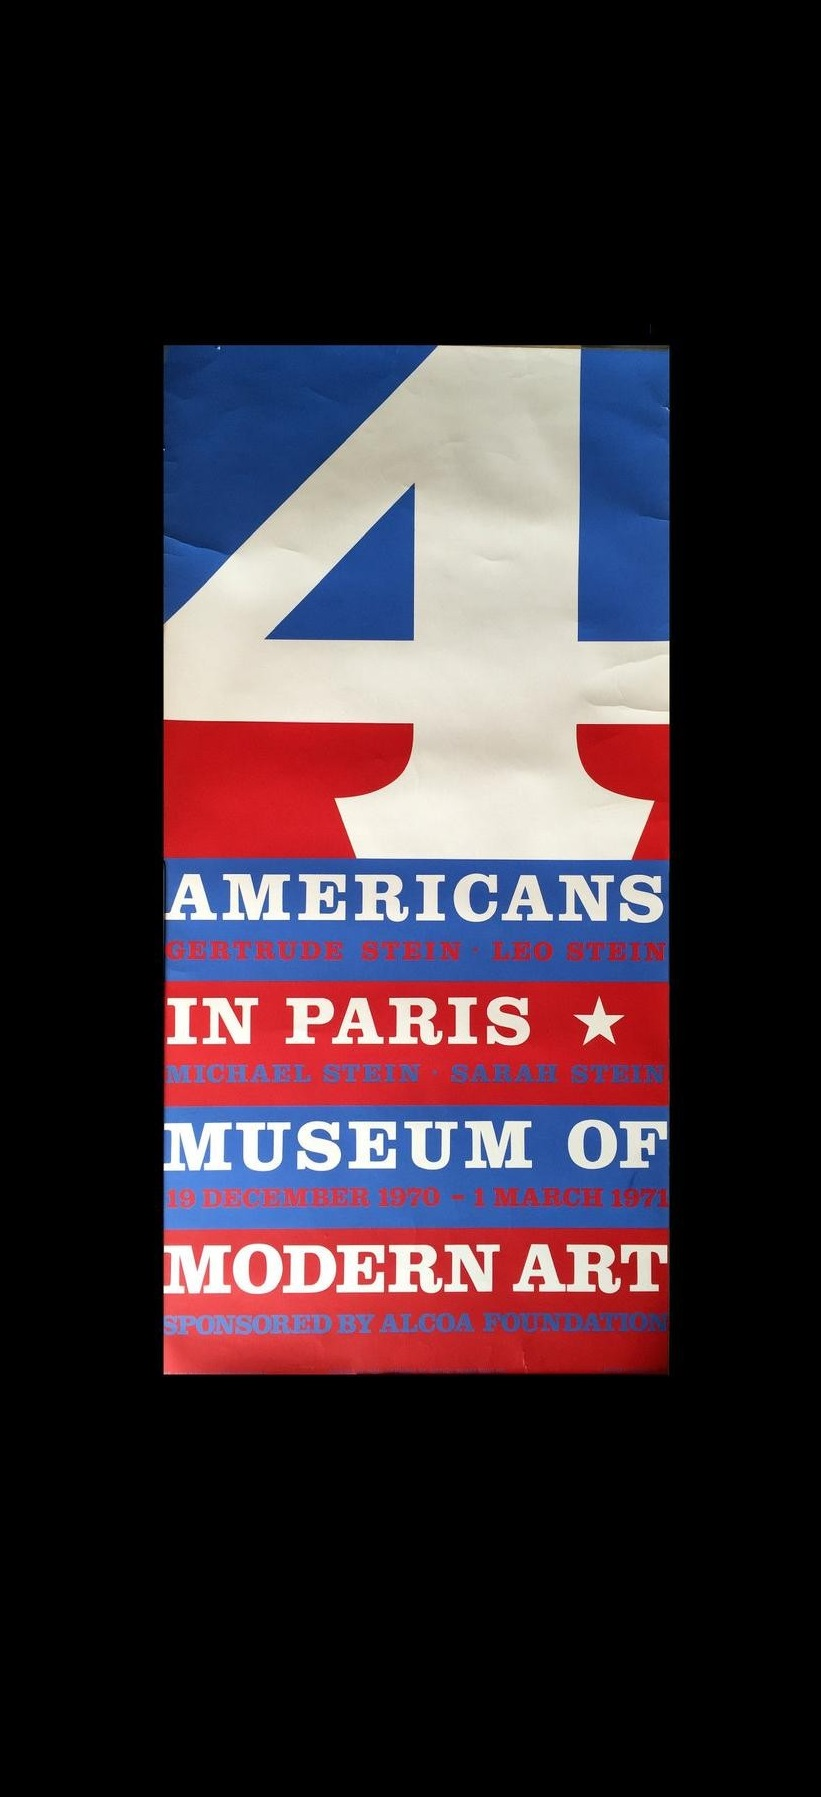 """4 Americans in Paris"", 1 970, Museum of Modern Art, Exhibition Poster."